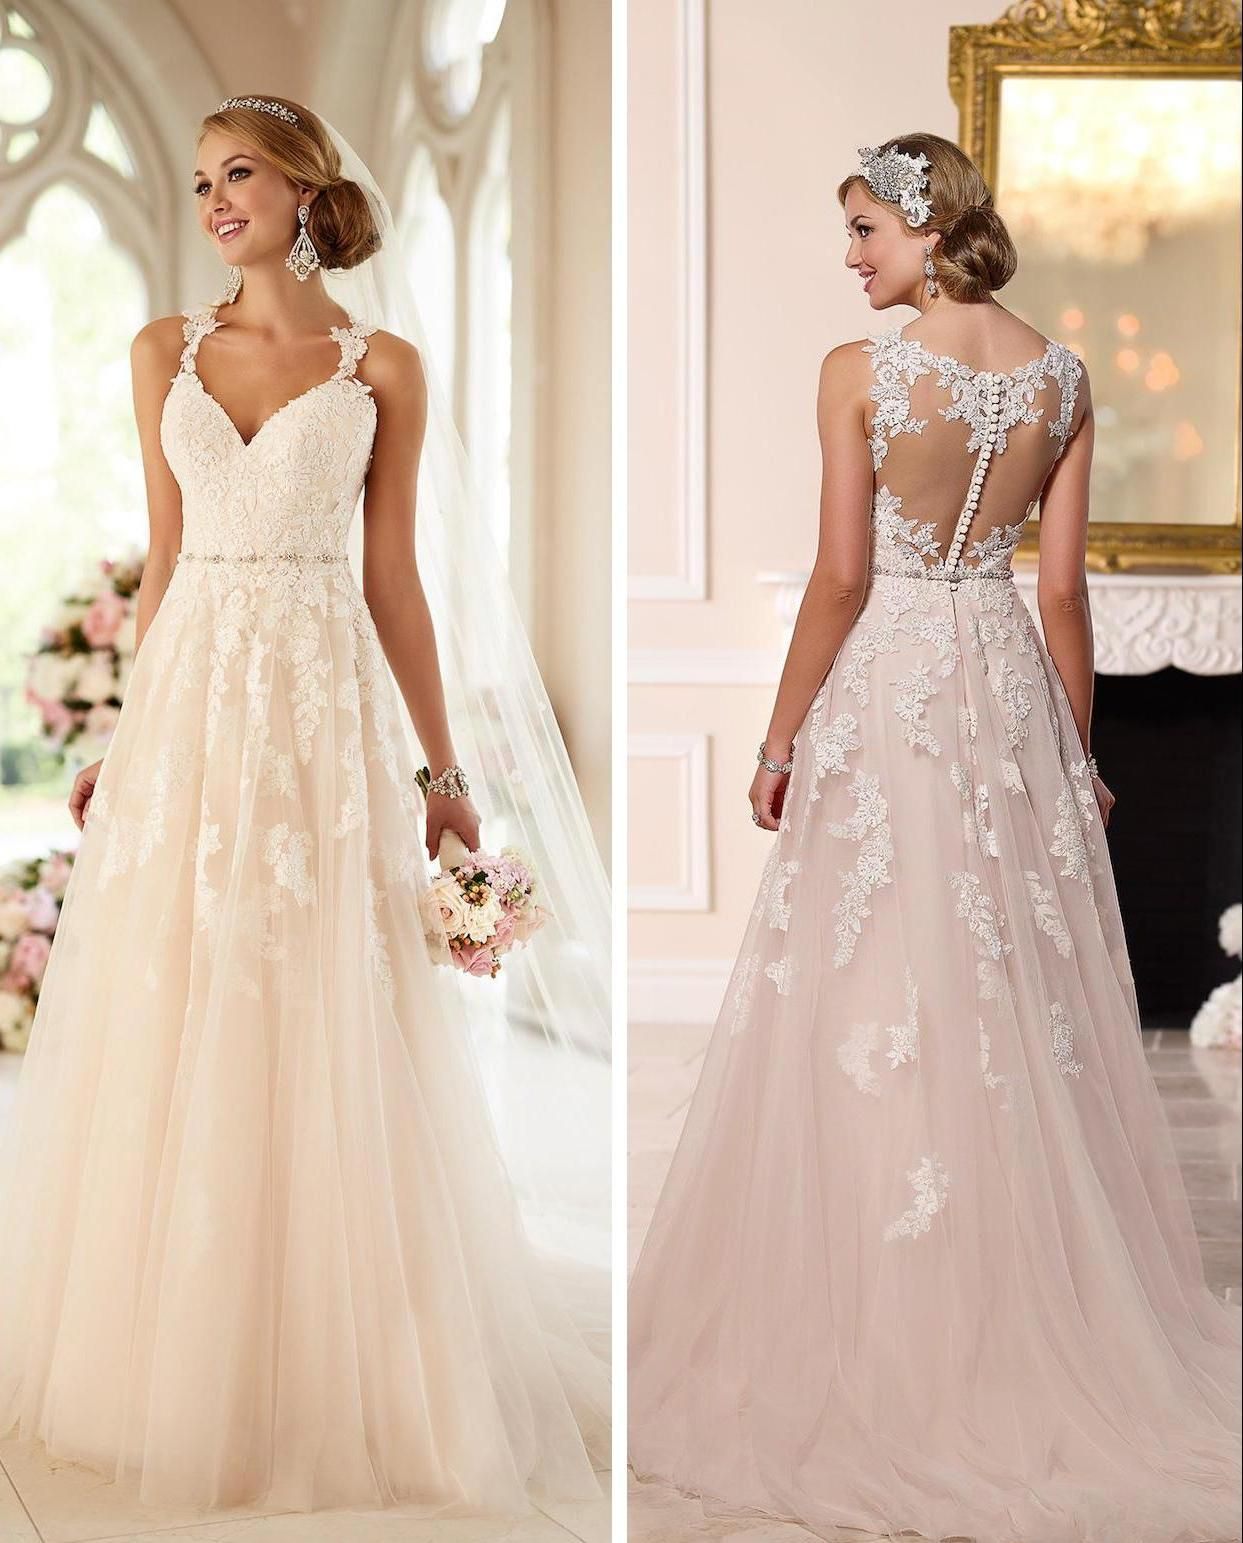 31 Incredible Lace Wedding Dresses Ideas in 2020 Wedding